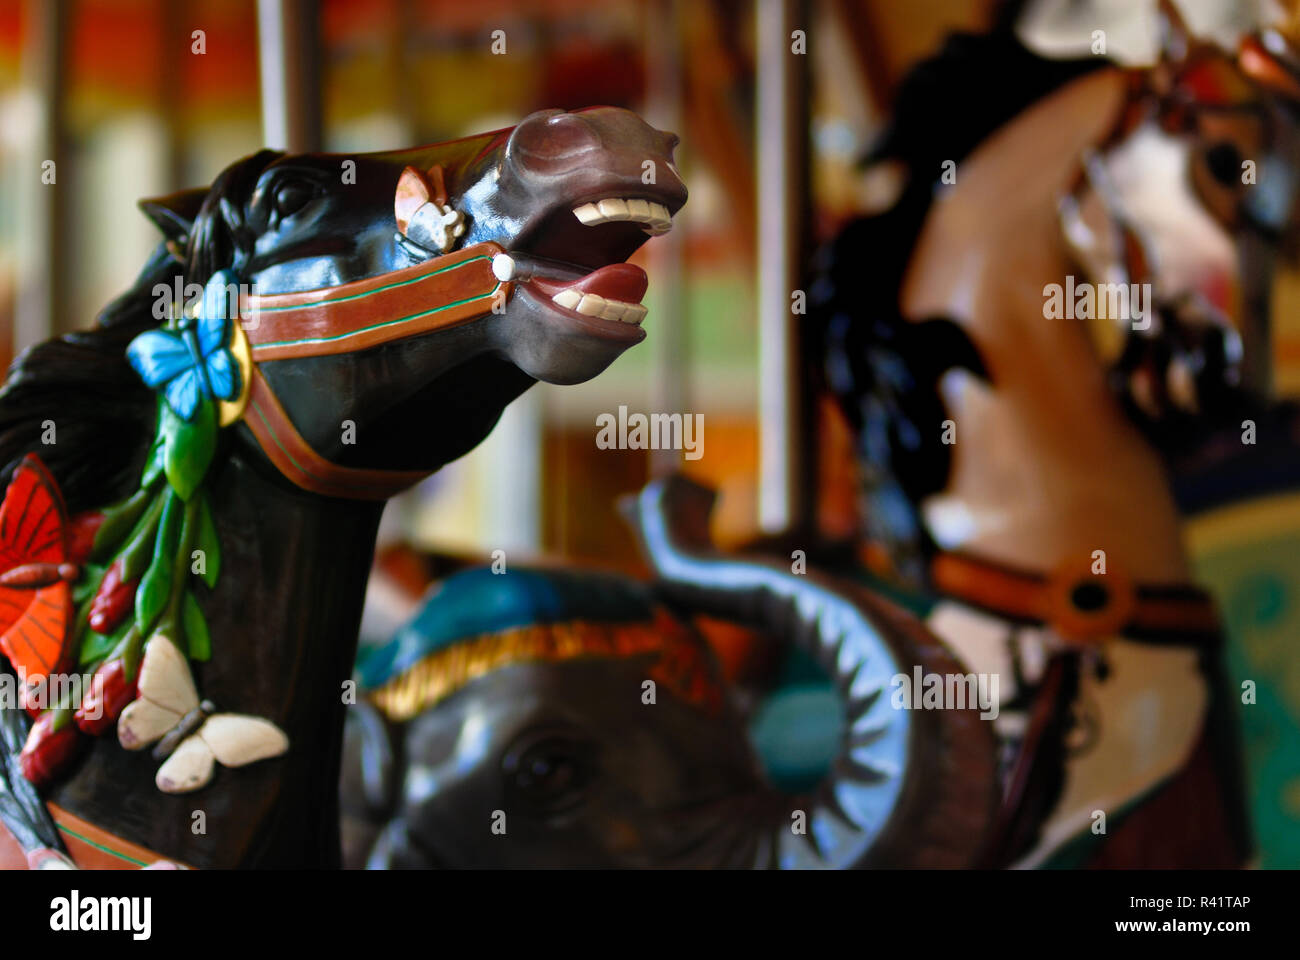 The carousel horses on the Boardwalk merry go round on the cruise ship Oasis of the Seas. - Stock Image